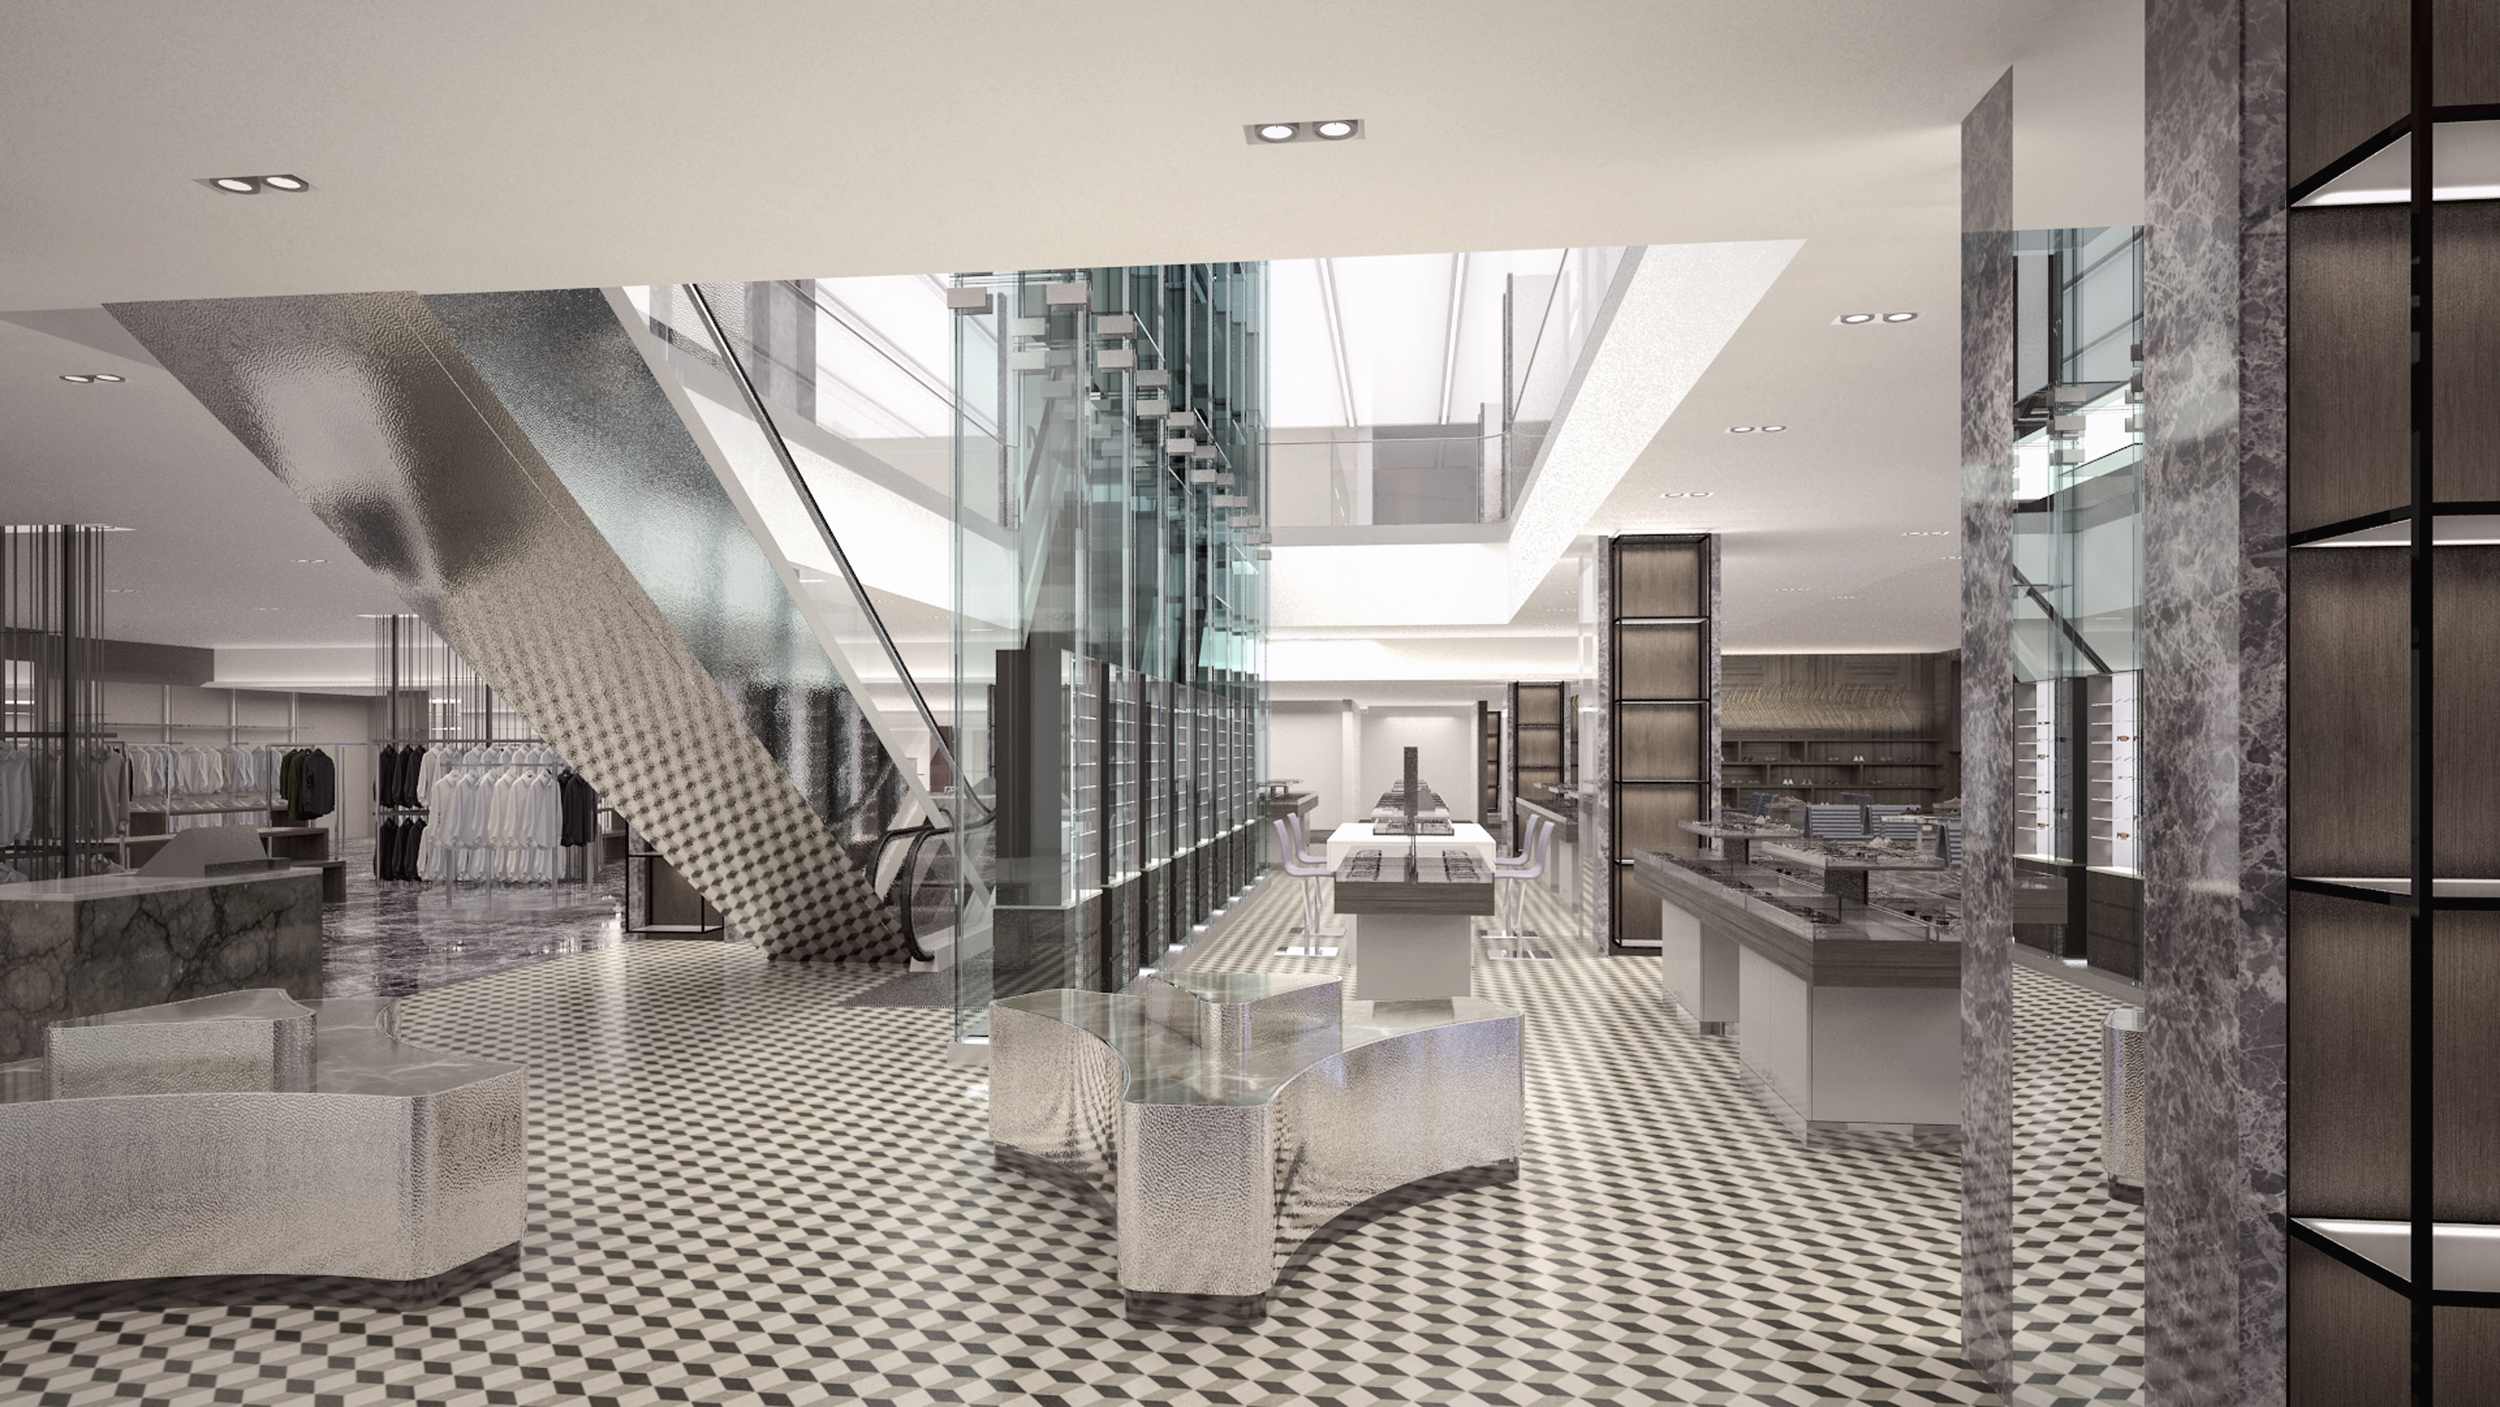 Renderings of the new Holt Renfrew Vancouver atrium. Photo: Holt Renfrew